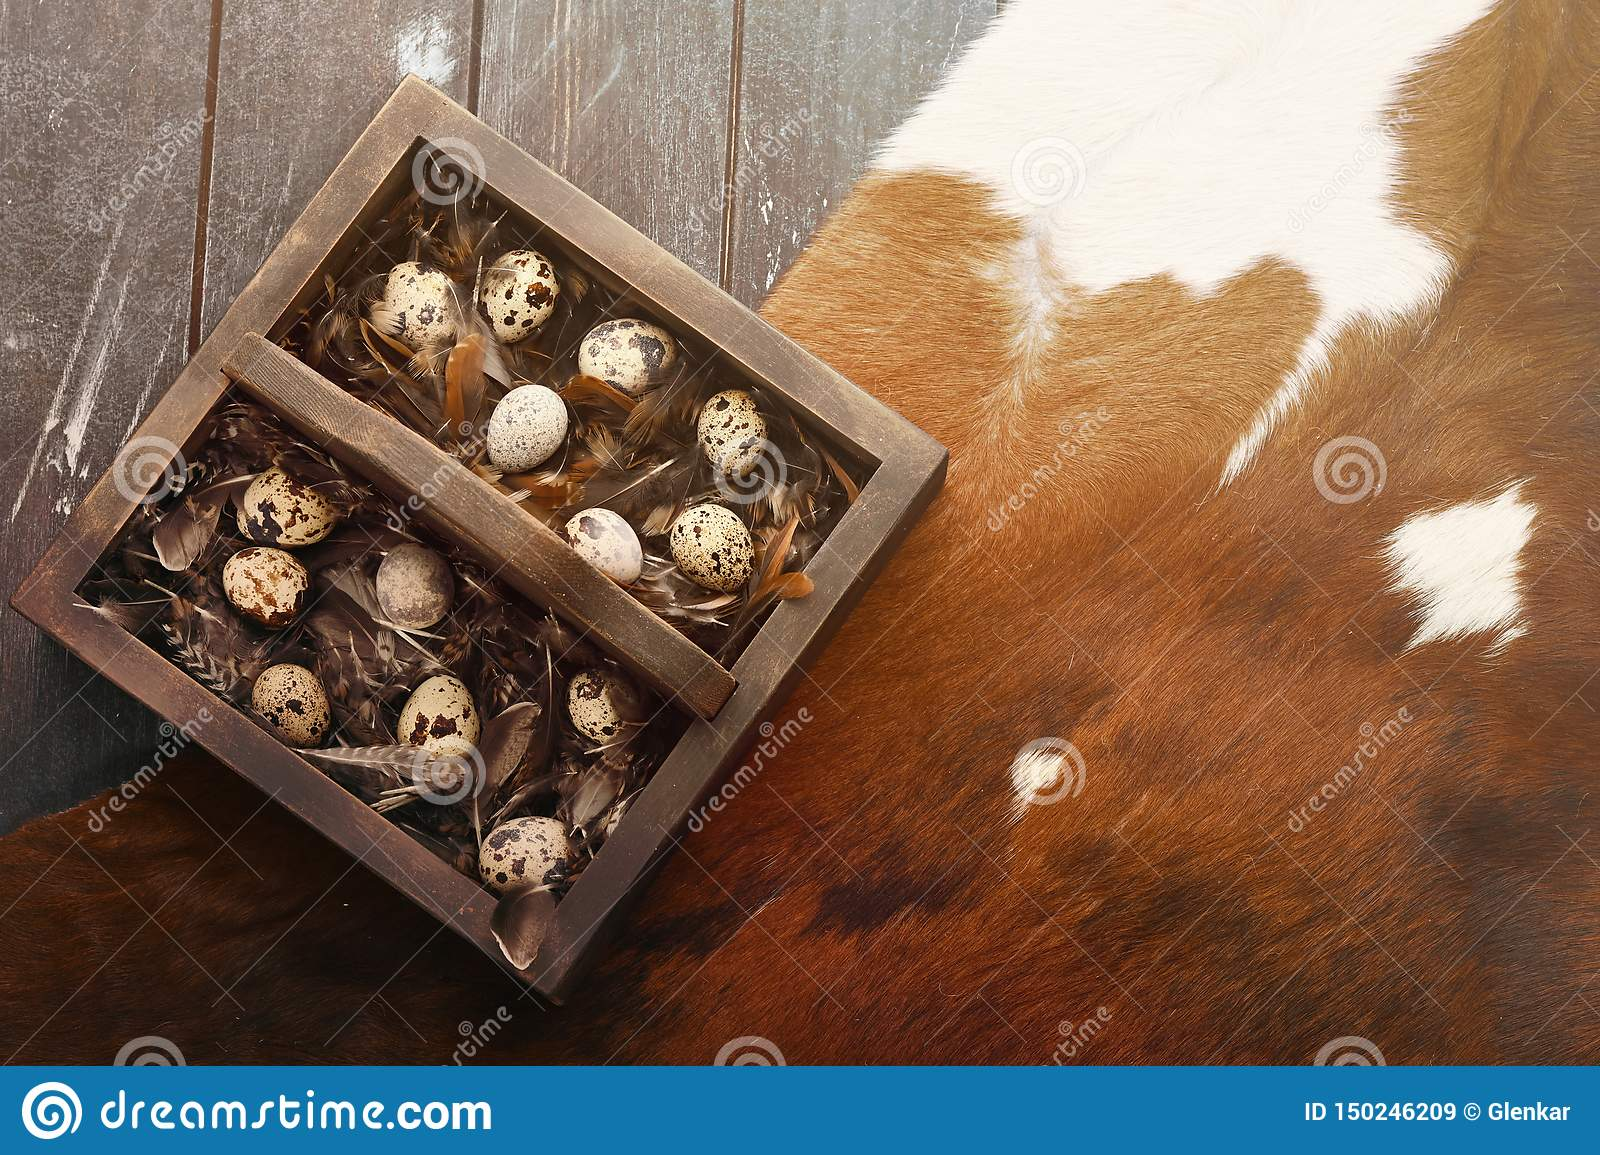 Open eco-friendly wooden box with feathers and quail eggs on animal skin. Rough dyed wooden background. Eggs For Easter.